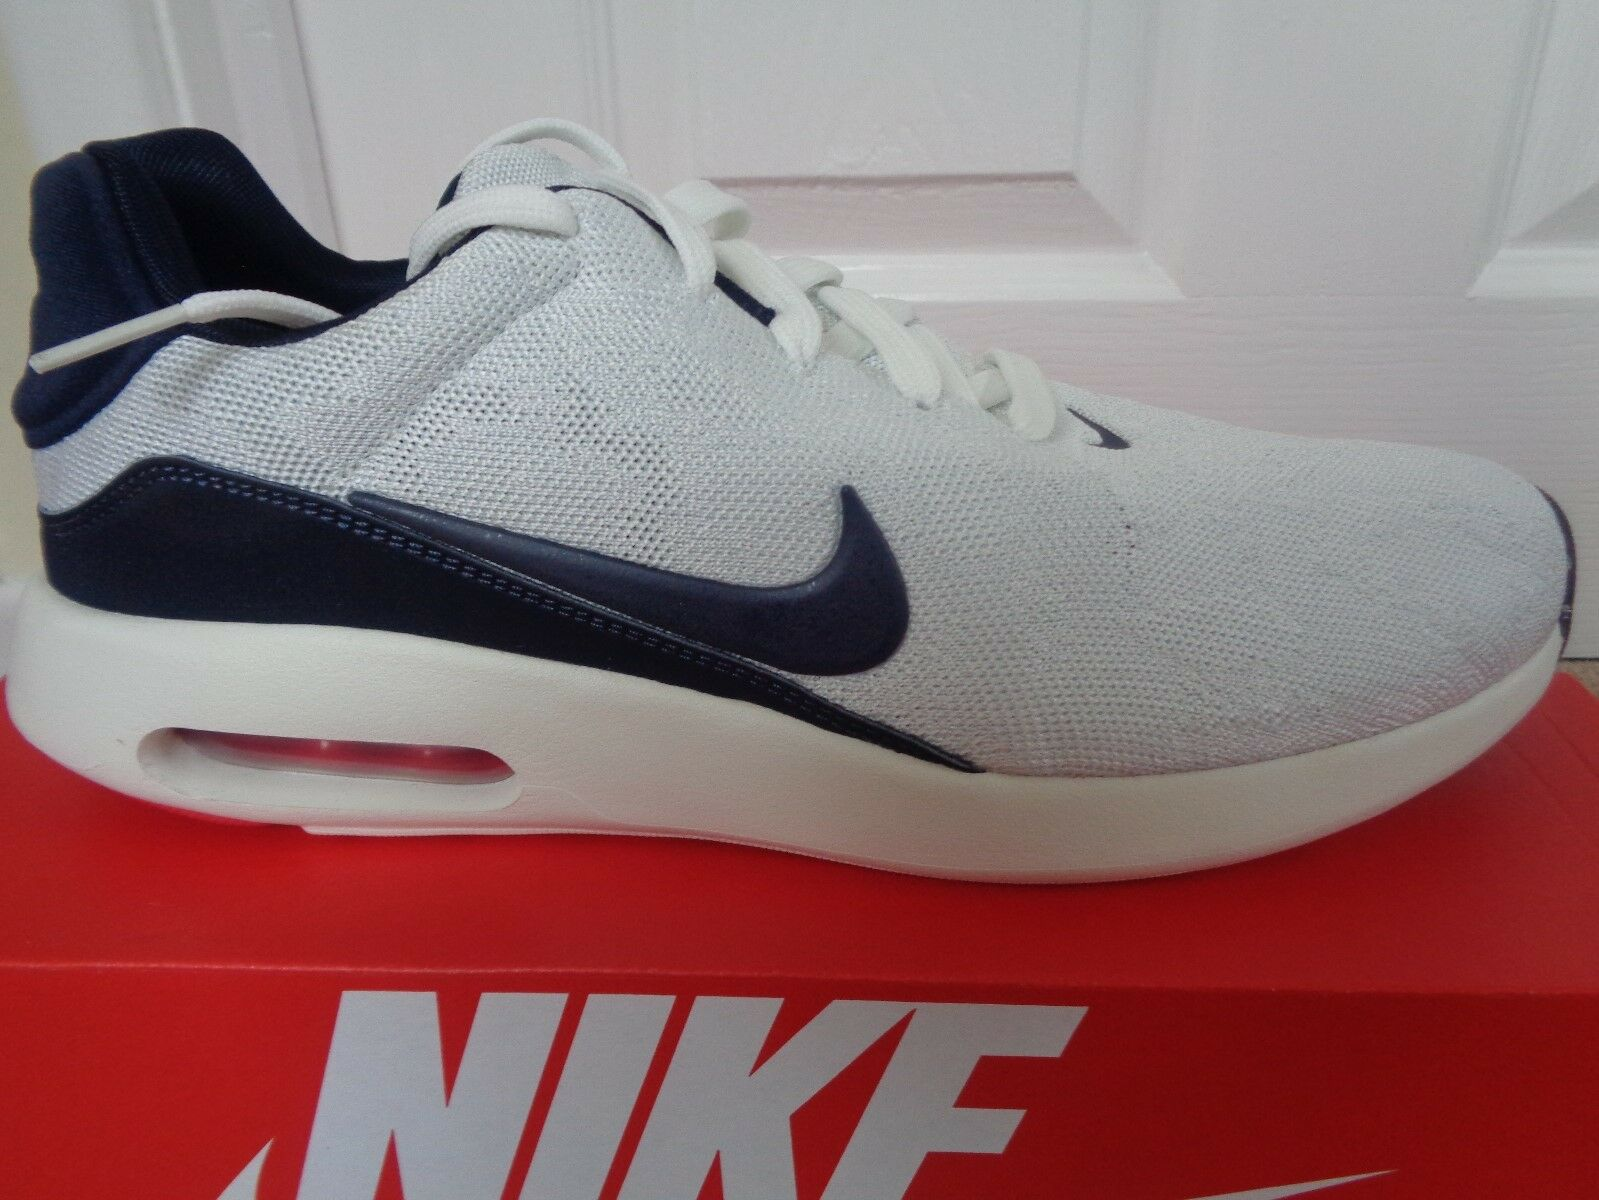 Nike Air Max modern Flyknit trainers shoes 876066 100 uk 6.5 eu 40.5 us 7.5 NEW